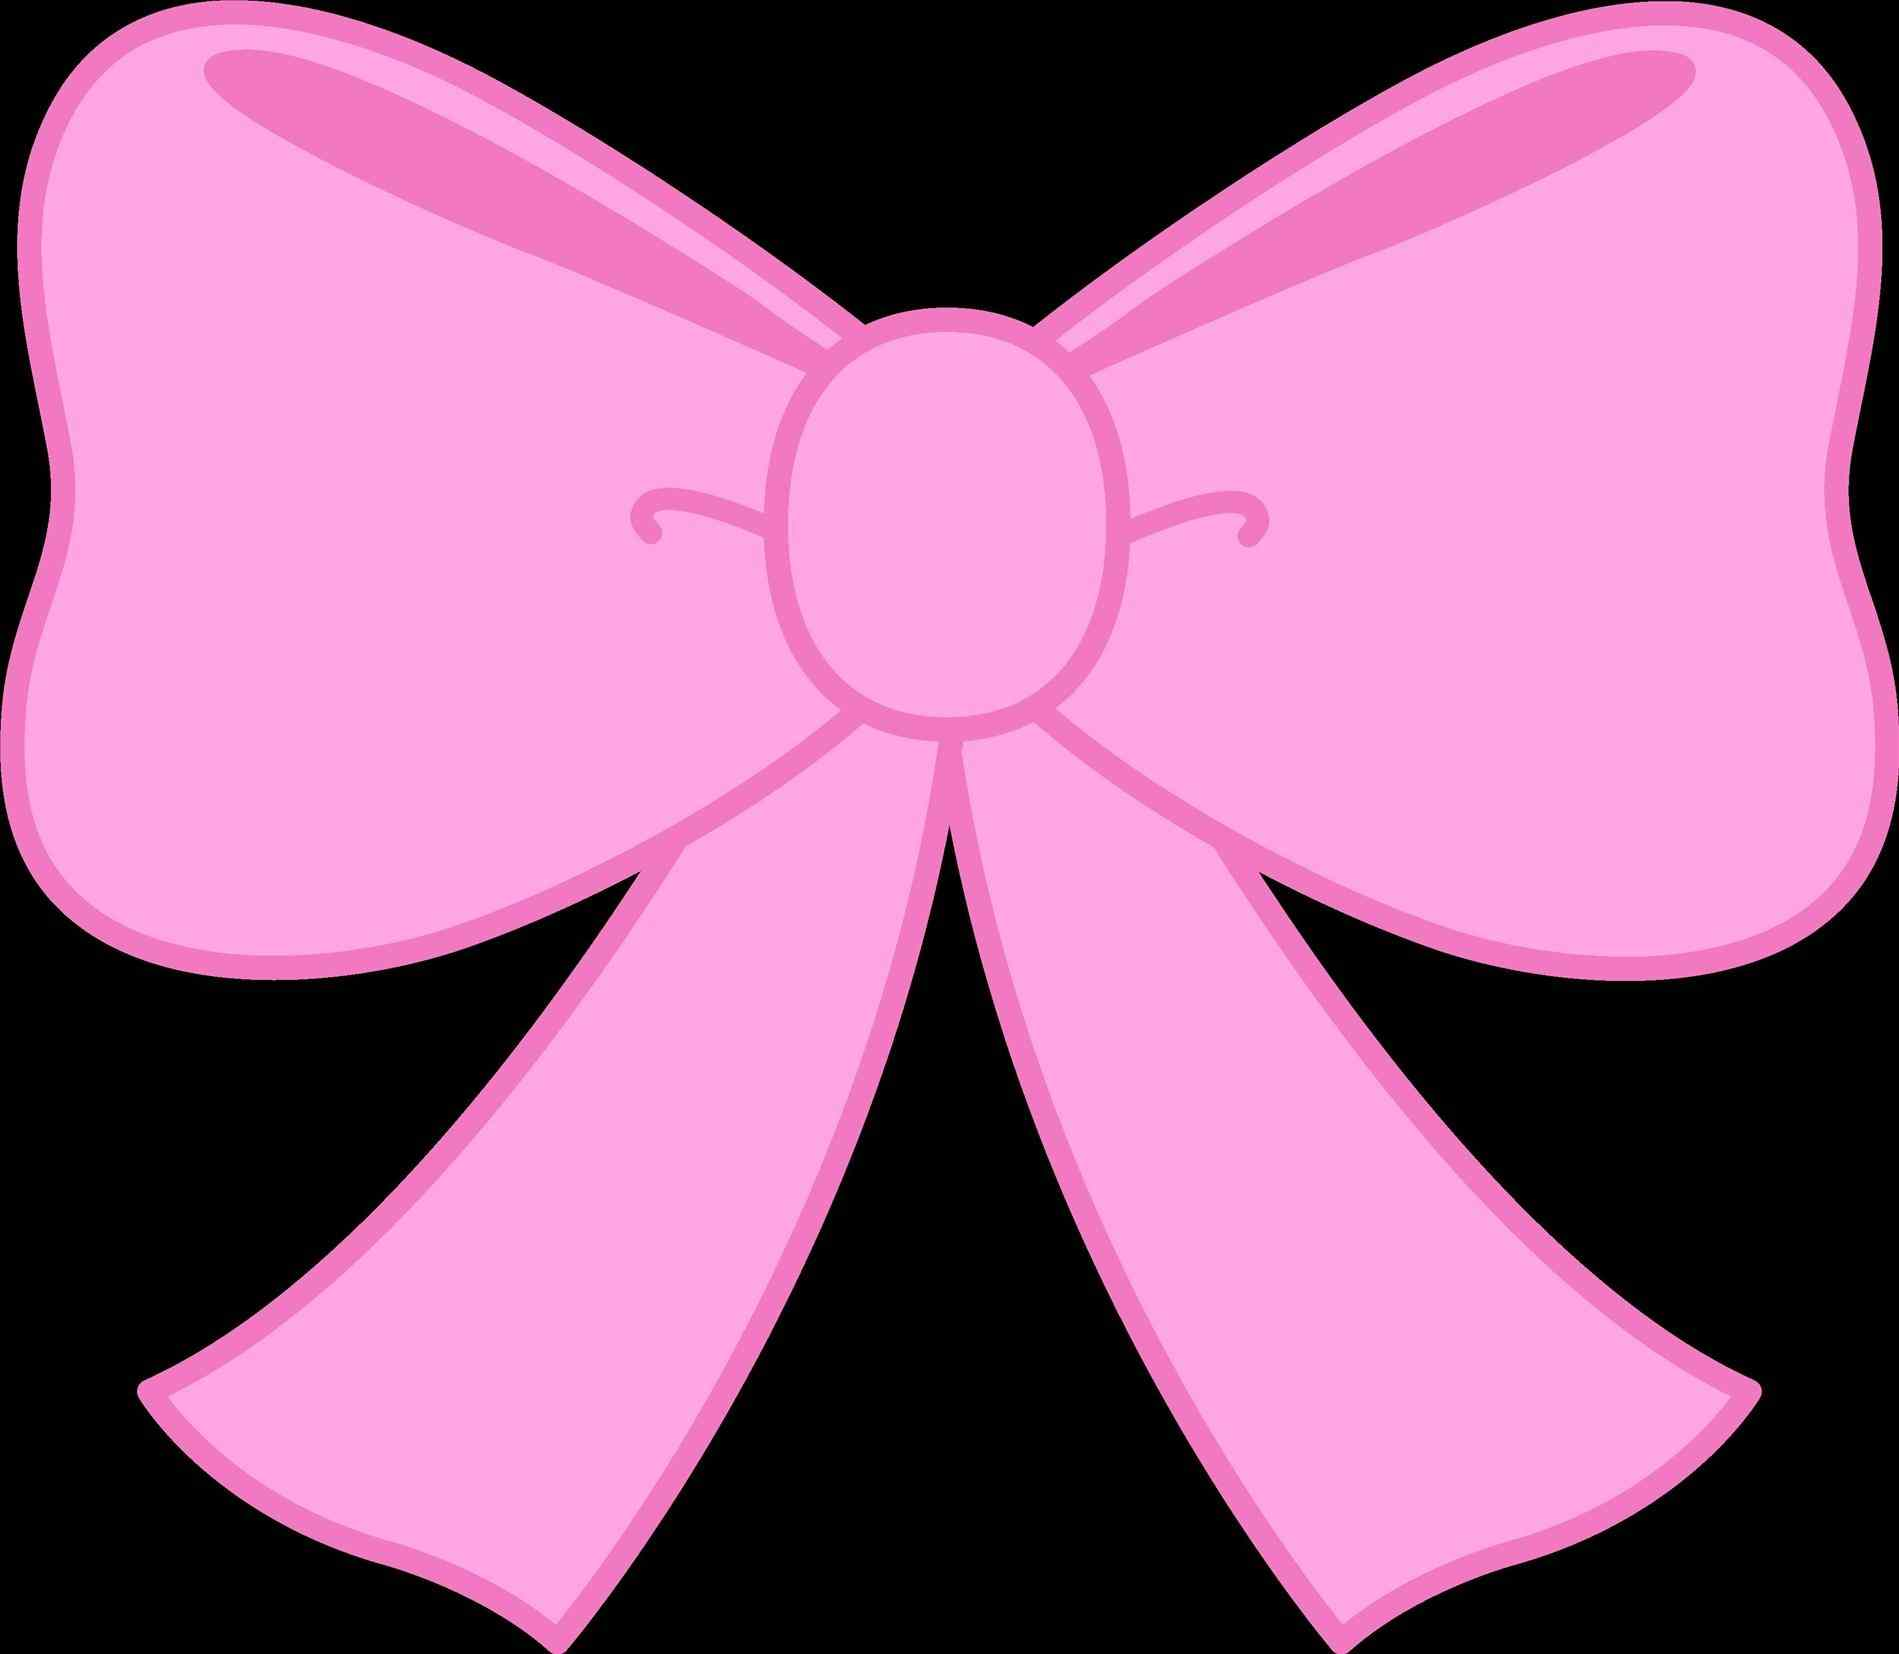 1899x1654 Pink Ribbon Bow Clip Art. Top Pink Ribbon Border Clipart With Pink